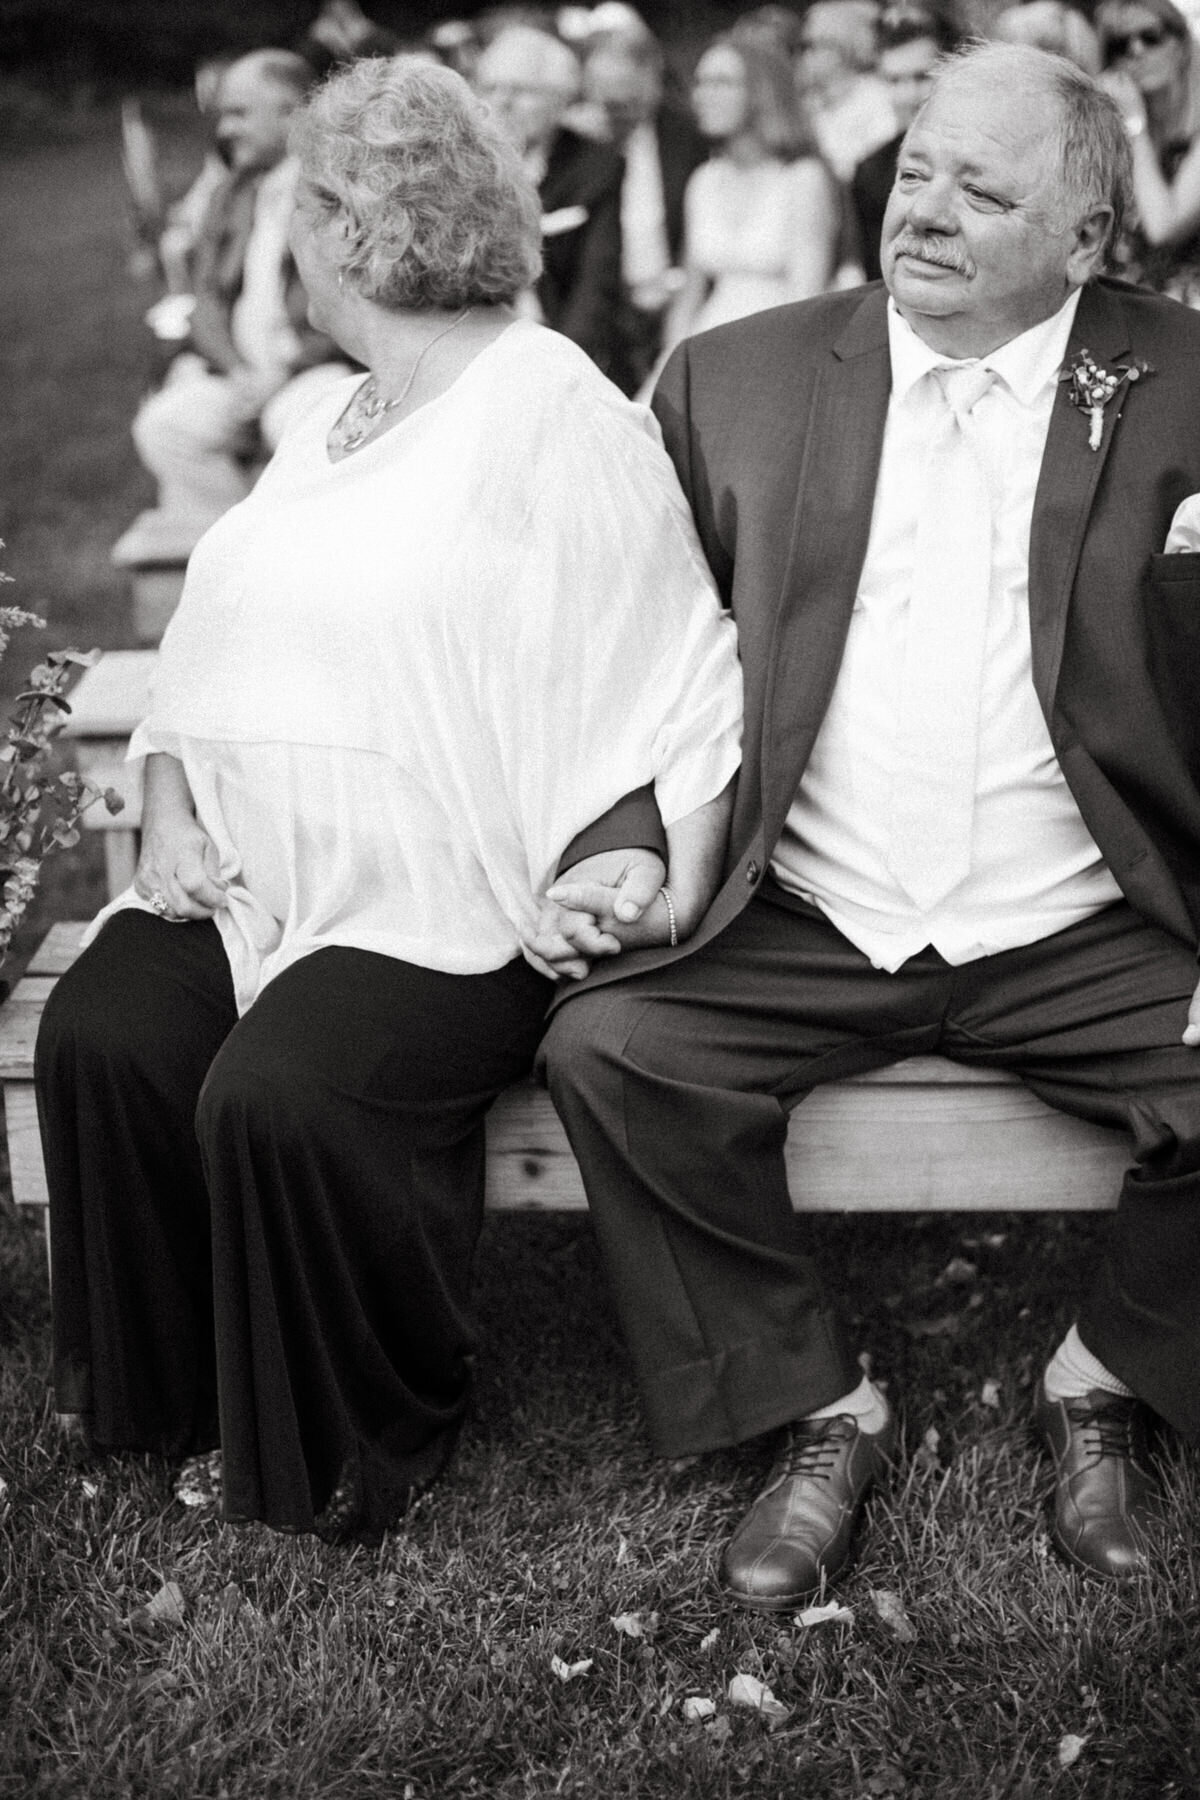 The older relatives of one of the soon to be newlyweds wait for the wedding to begin while holding hands, with the woman holding the man's hands and looking expectantly down the aisle.